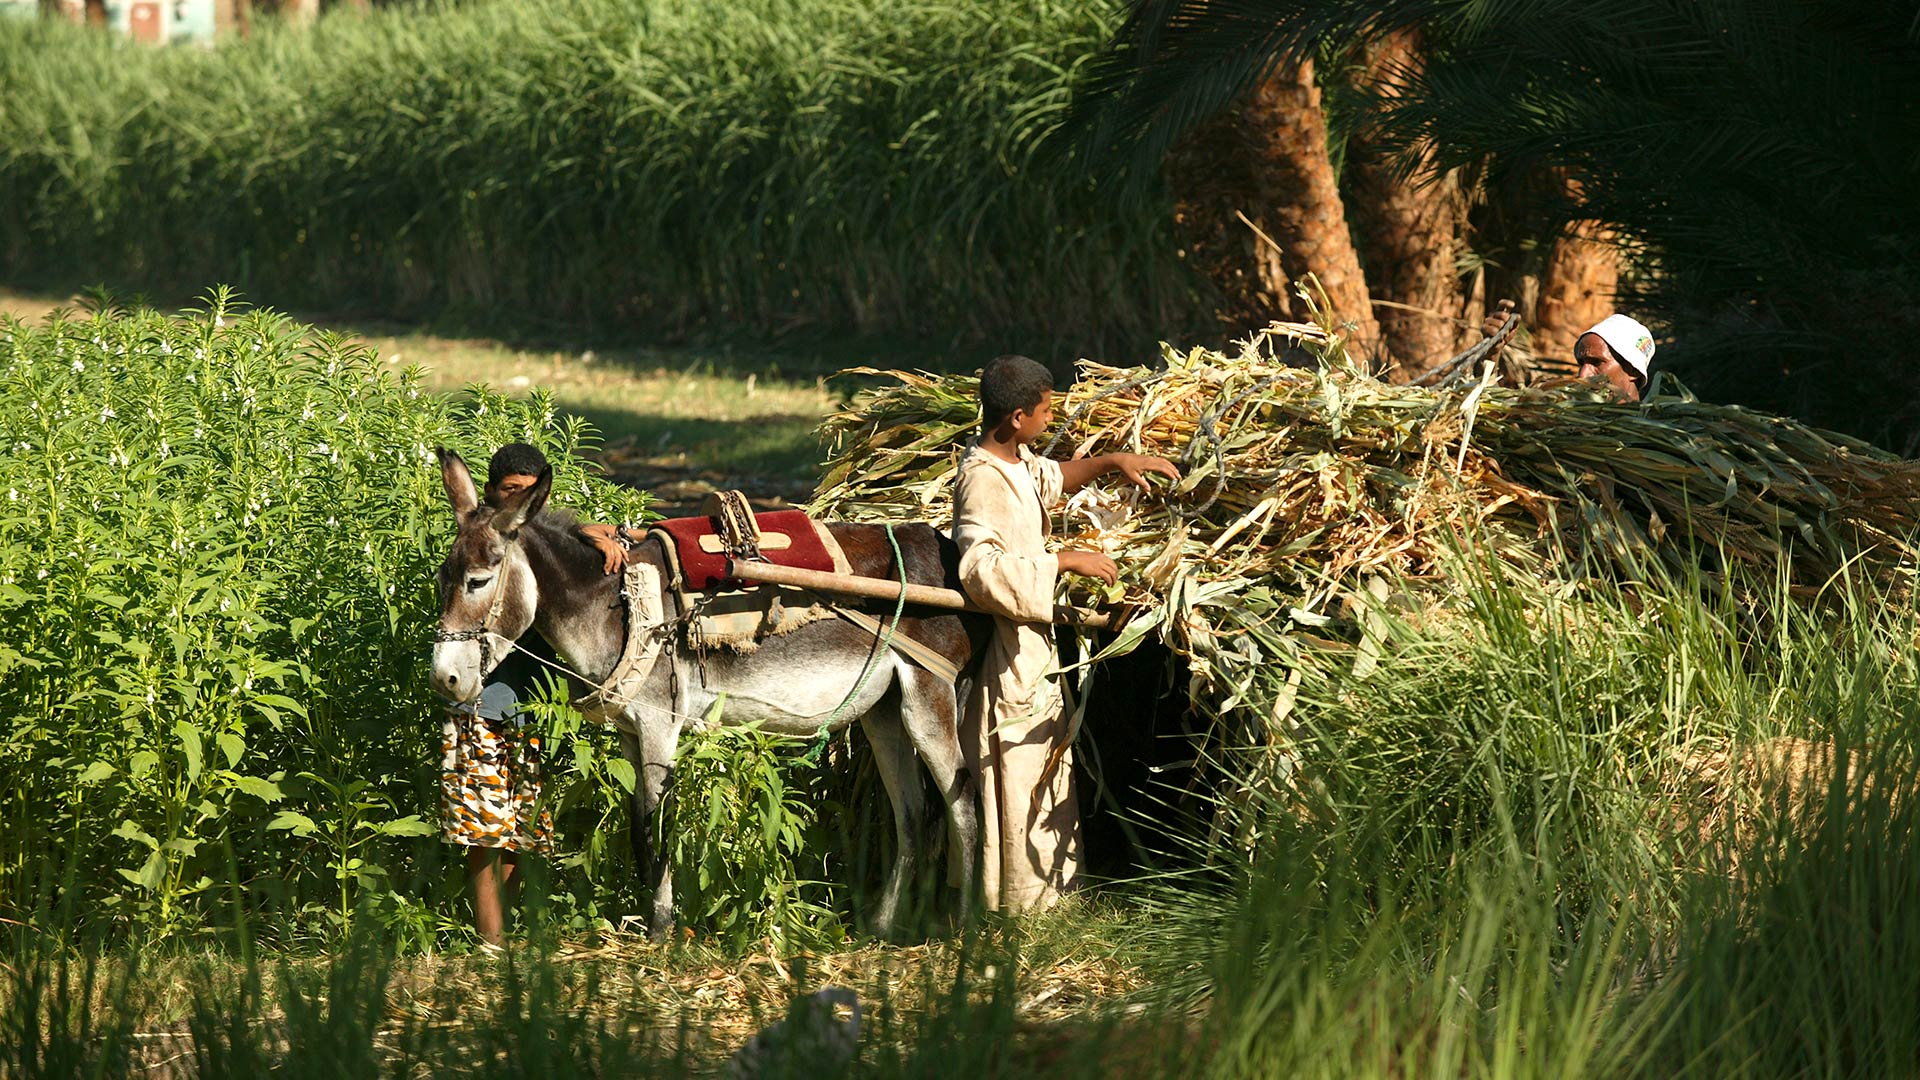 Farmers along the canal of the West Bank near Luxor, Egypt